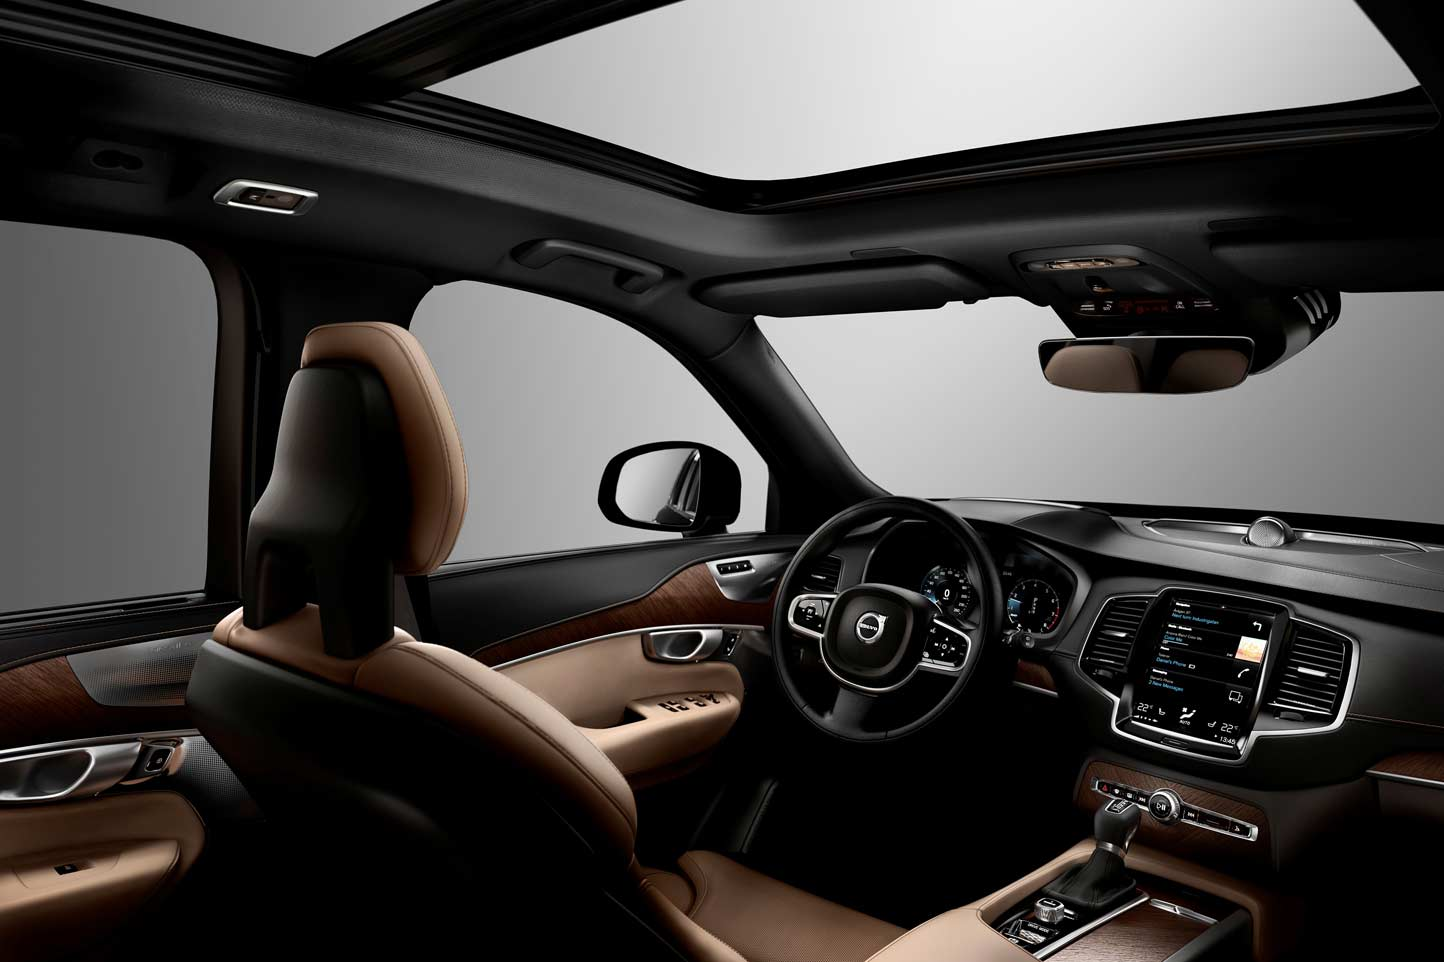 fiche technique volvo xc90 d5 awd 2015. Black Bedroom Furniture Sets. Home Design Ideas